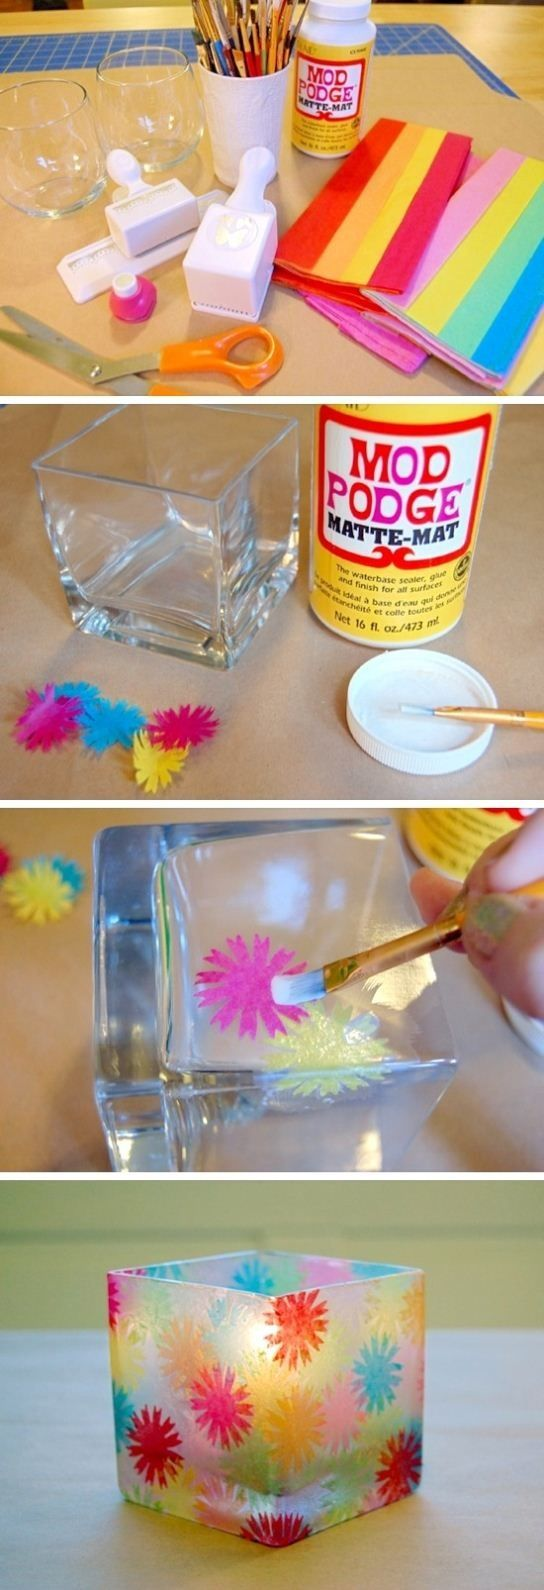 DIY ~~ Mod Podge Embellished Glass Craft Project